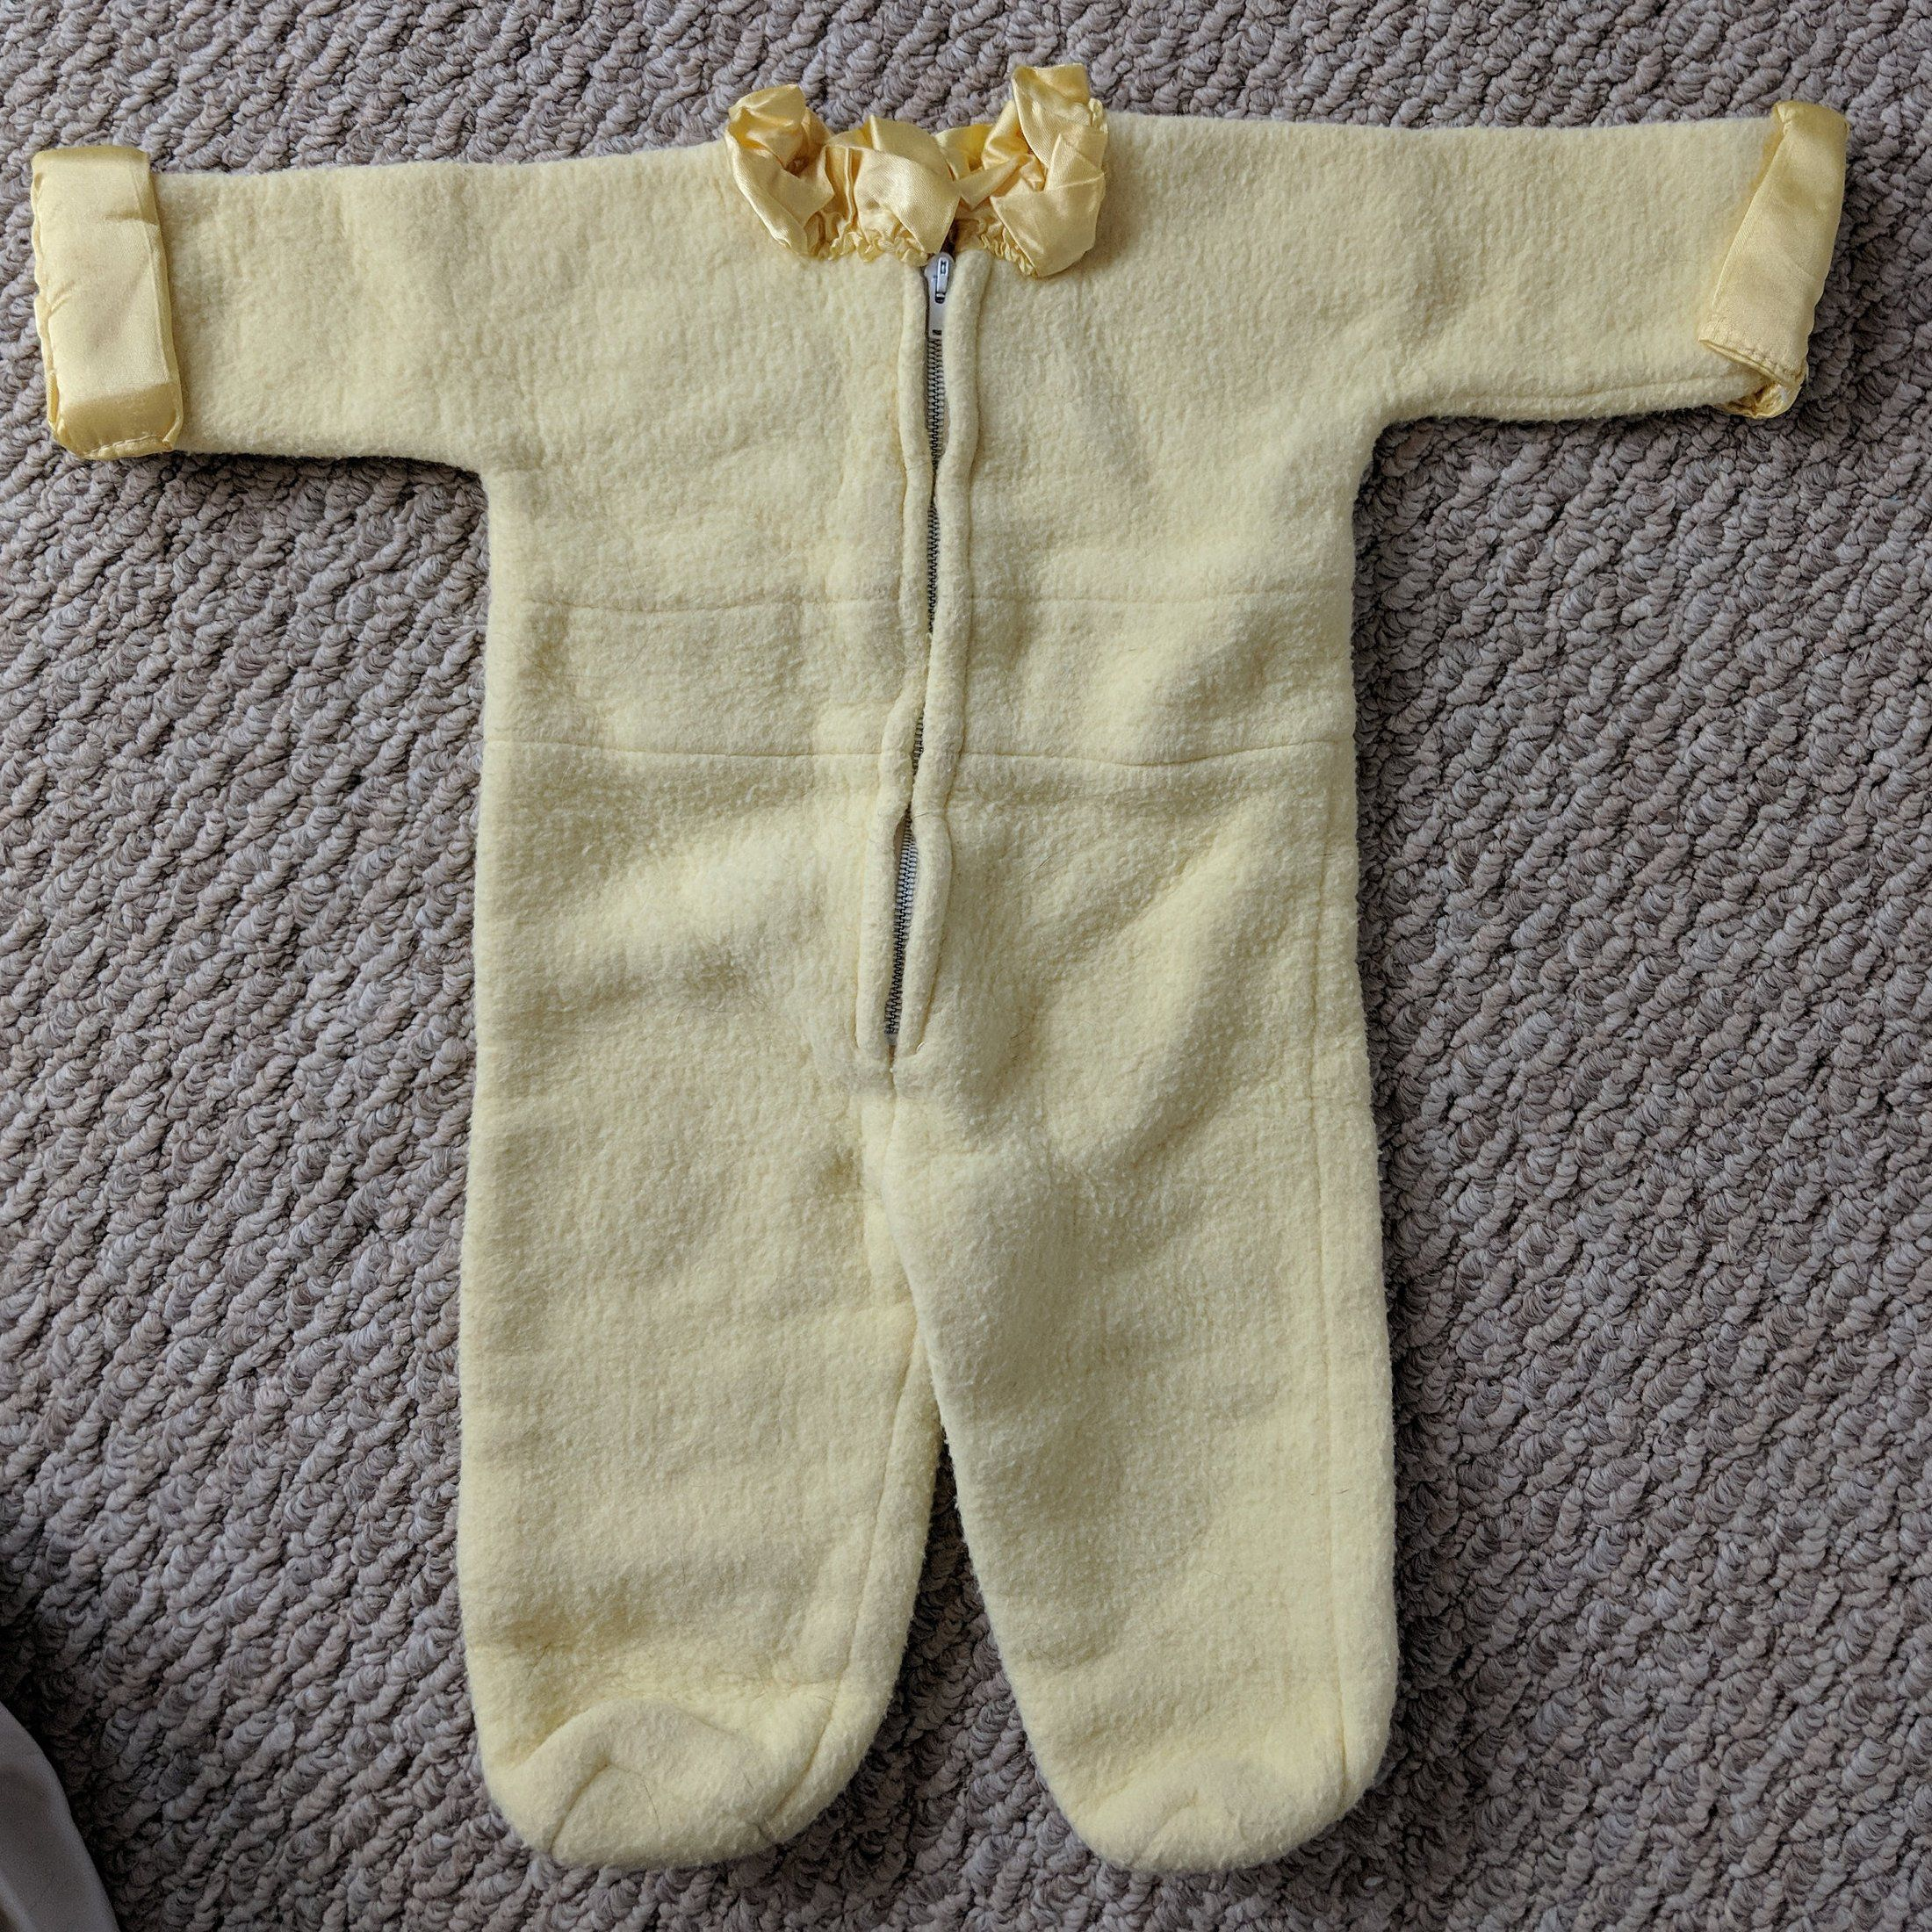 aaf49cfc8 Vintage Fleece Baby Onesie Sleeper with Feet 1950s Mid-Century Light Yellow  Handmade Unisex Newborn Infant Outfit Warm by InheritedTaste on Etsy